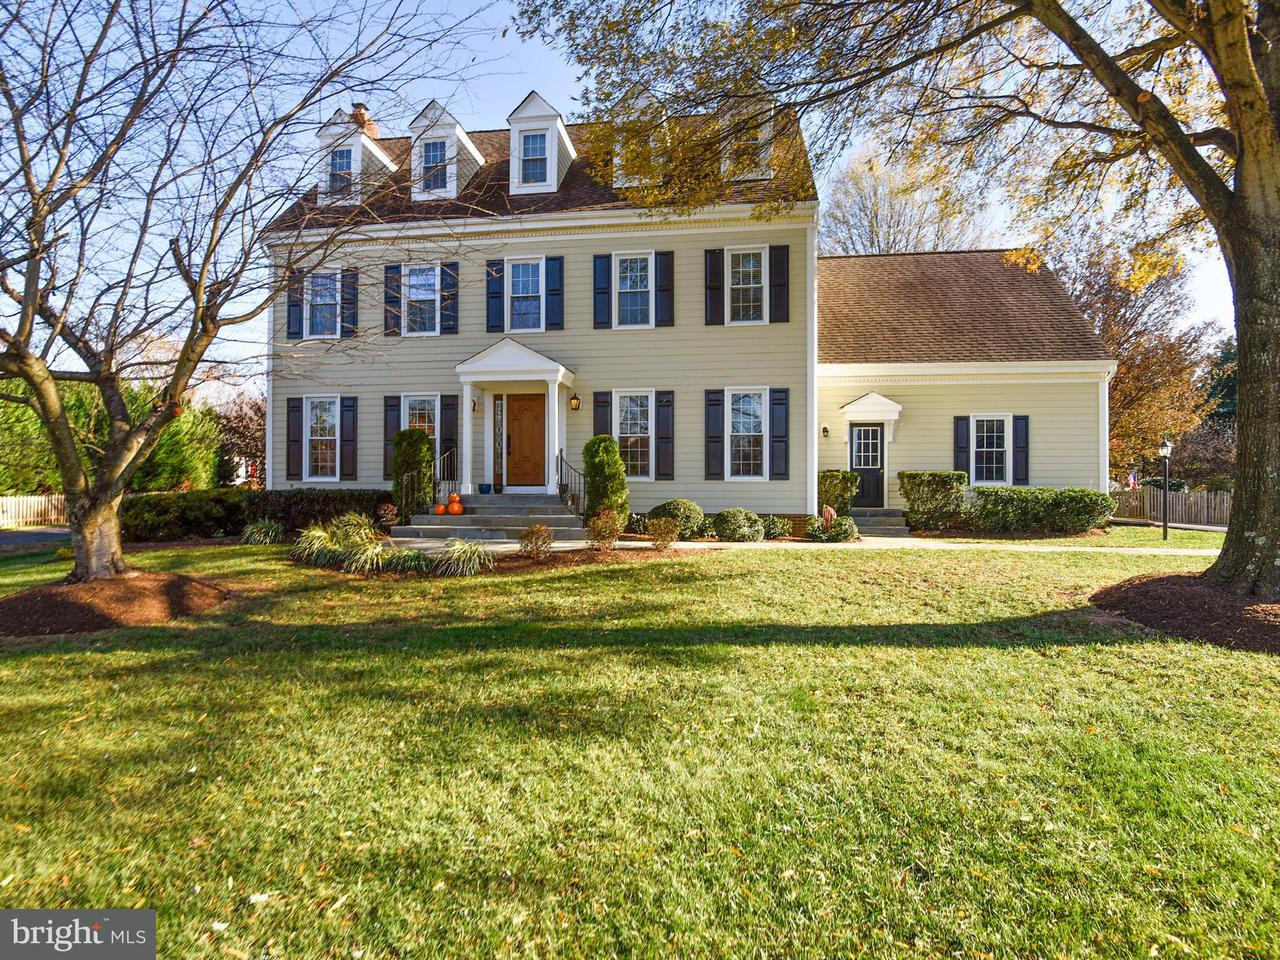 Single Family Home for Sale at 1155 SILVER BEECH Road 1155 SILVER BEECH Road Herndon, Virginia 20170 United States